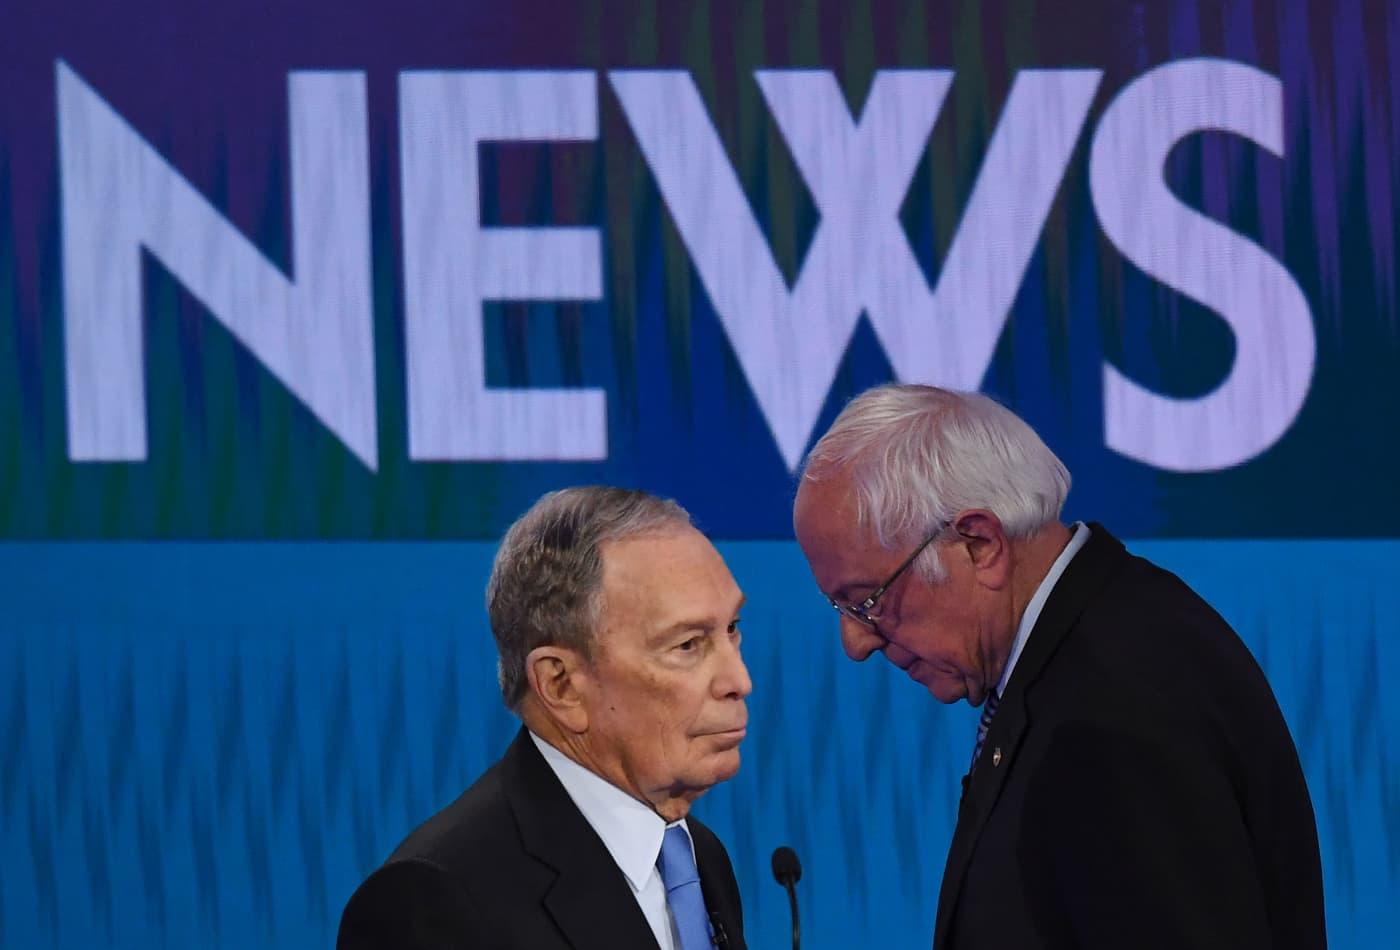 Silicon Valley has emerged as a battle of Bernie vs. Bloomberg ahead of Super Tuesday